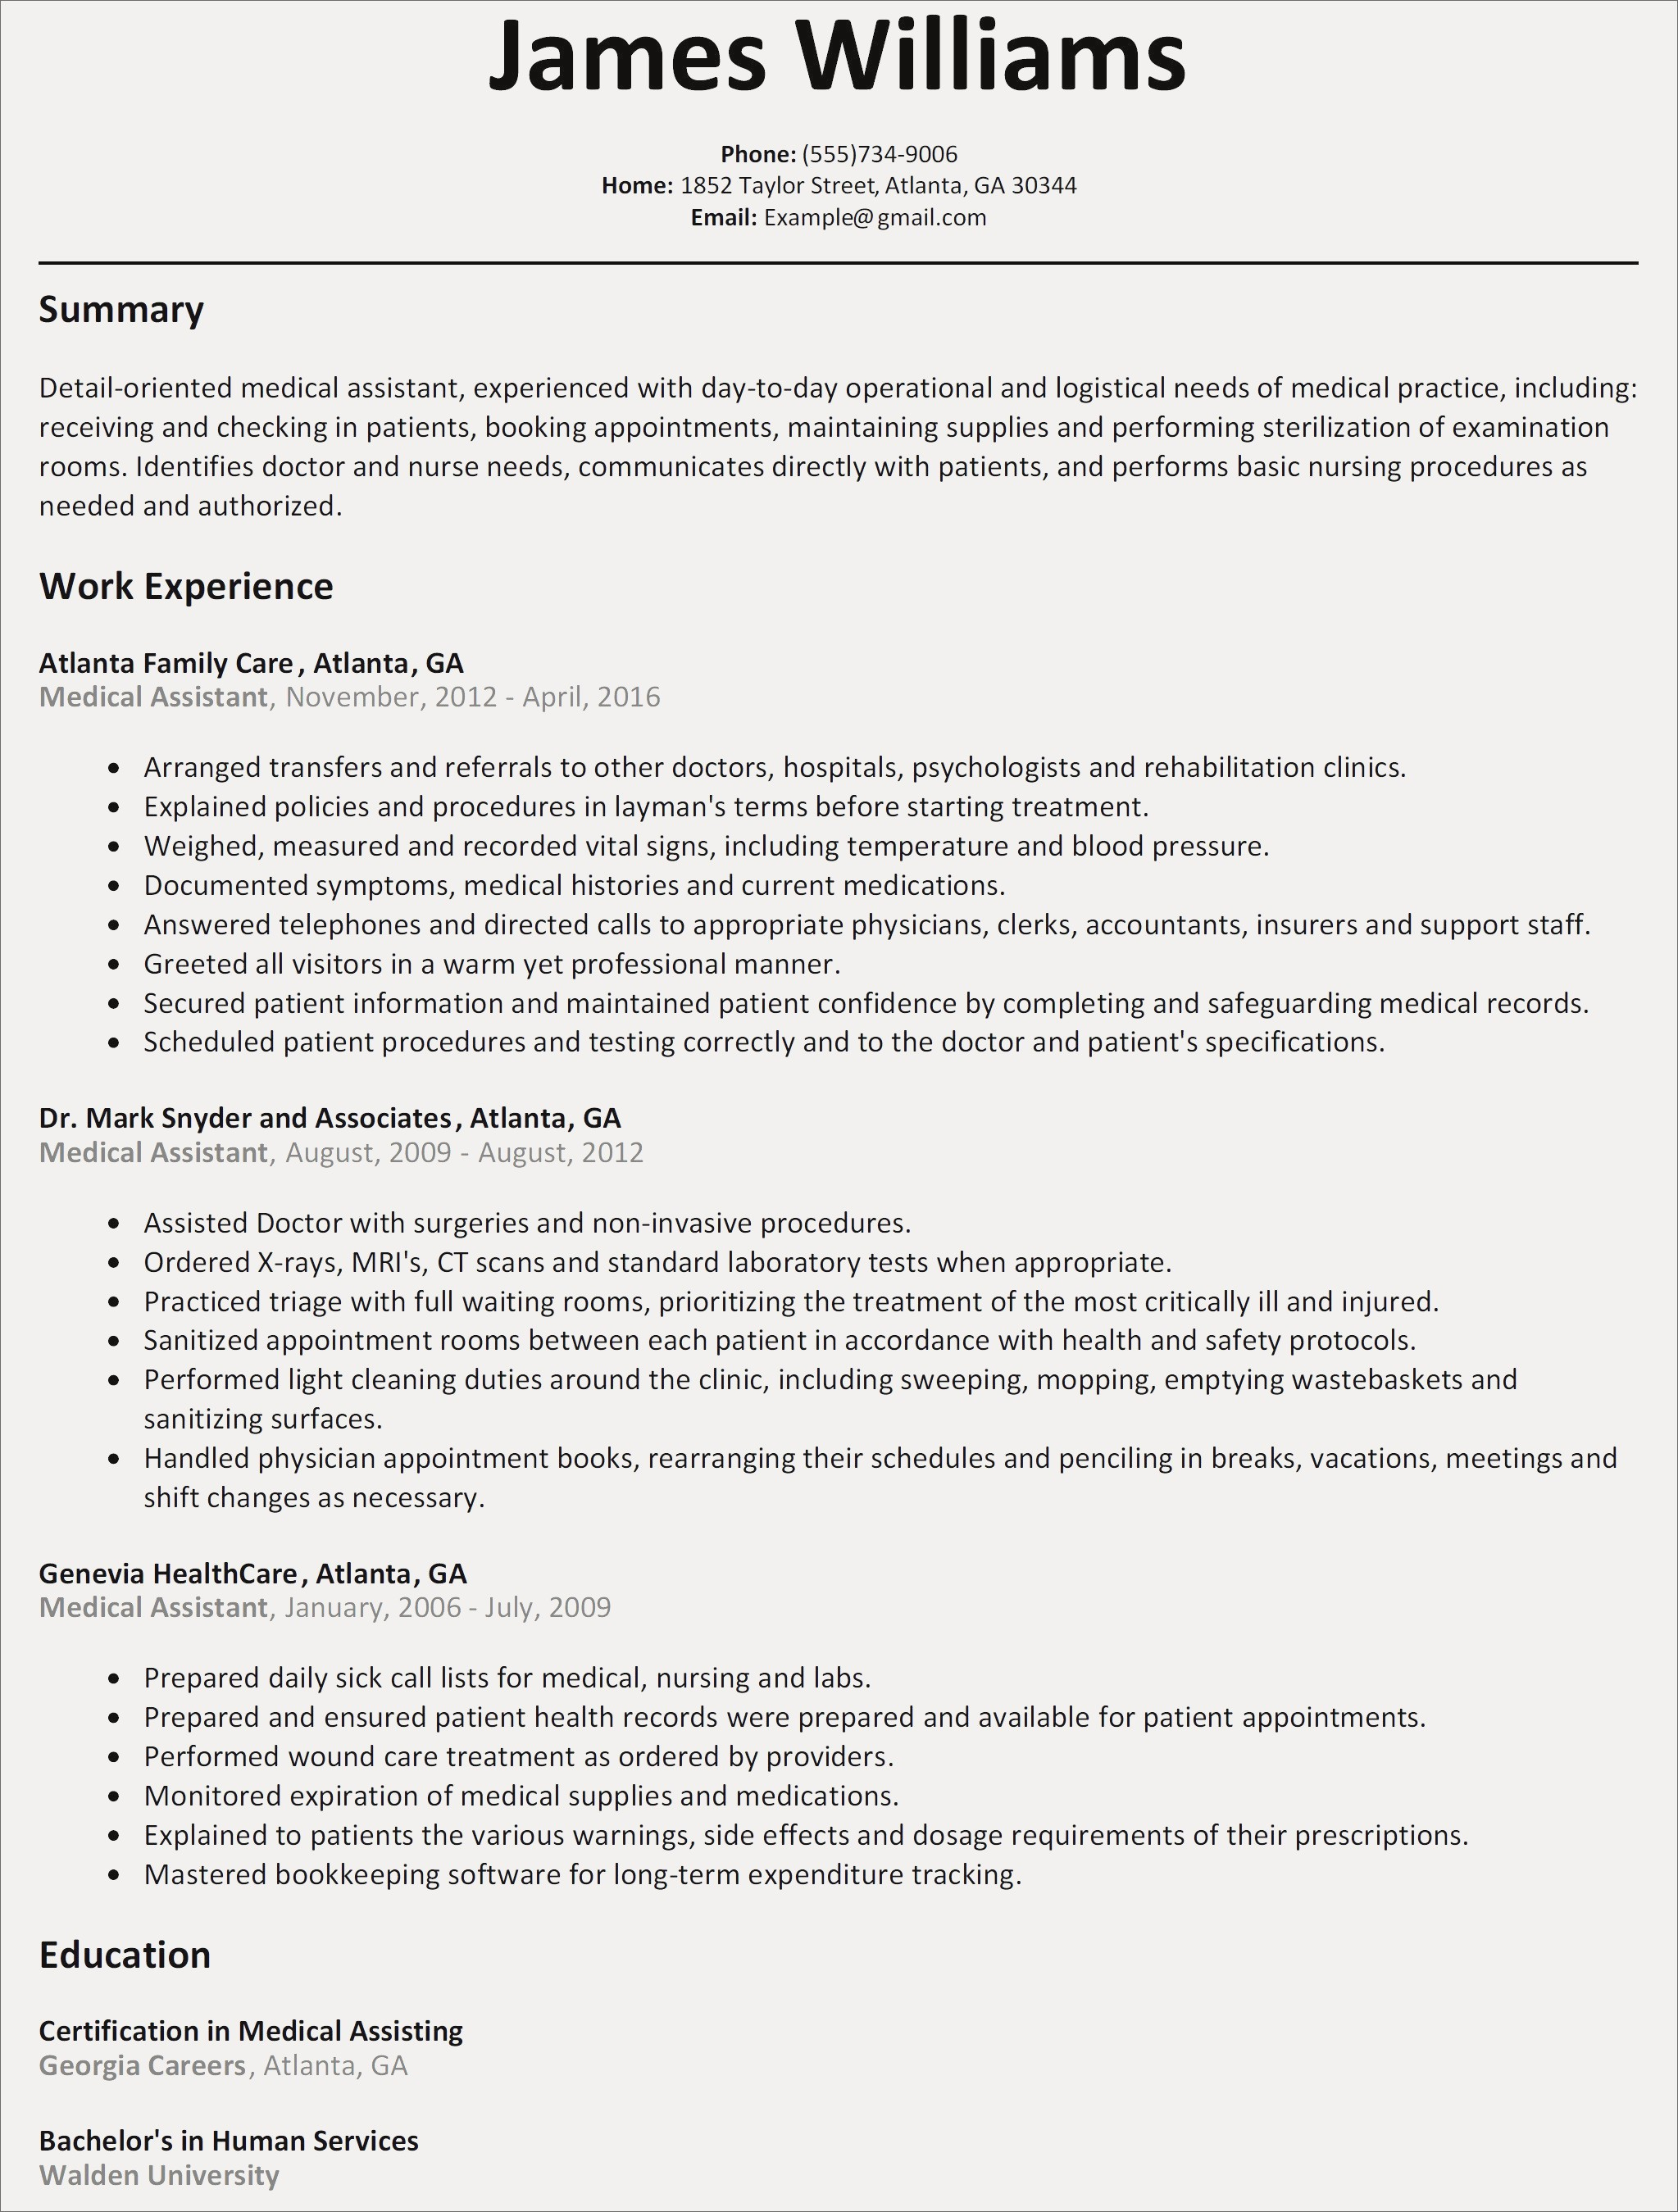 Free Resume Word Templates - Microsoft Word Template for Resume Save Free Resume Template for